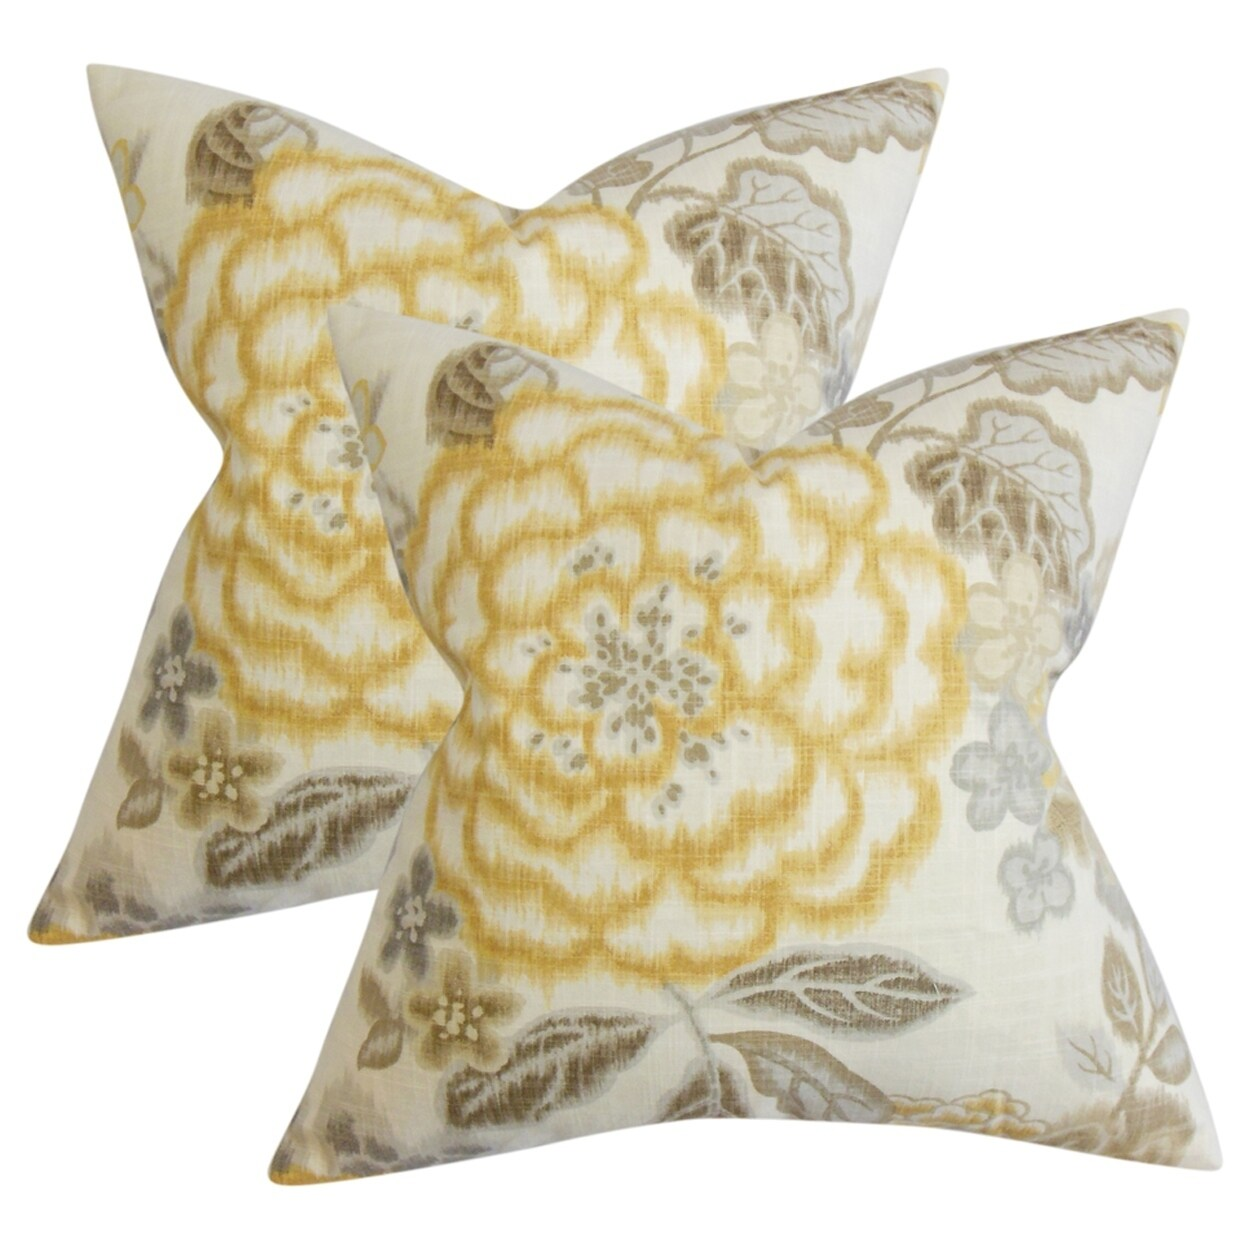 Unai Fl Throw Pillows In Yellow